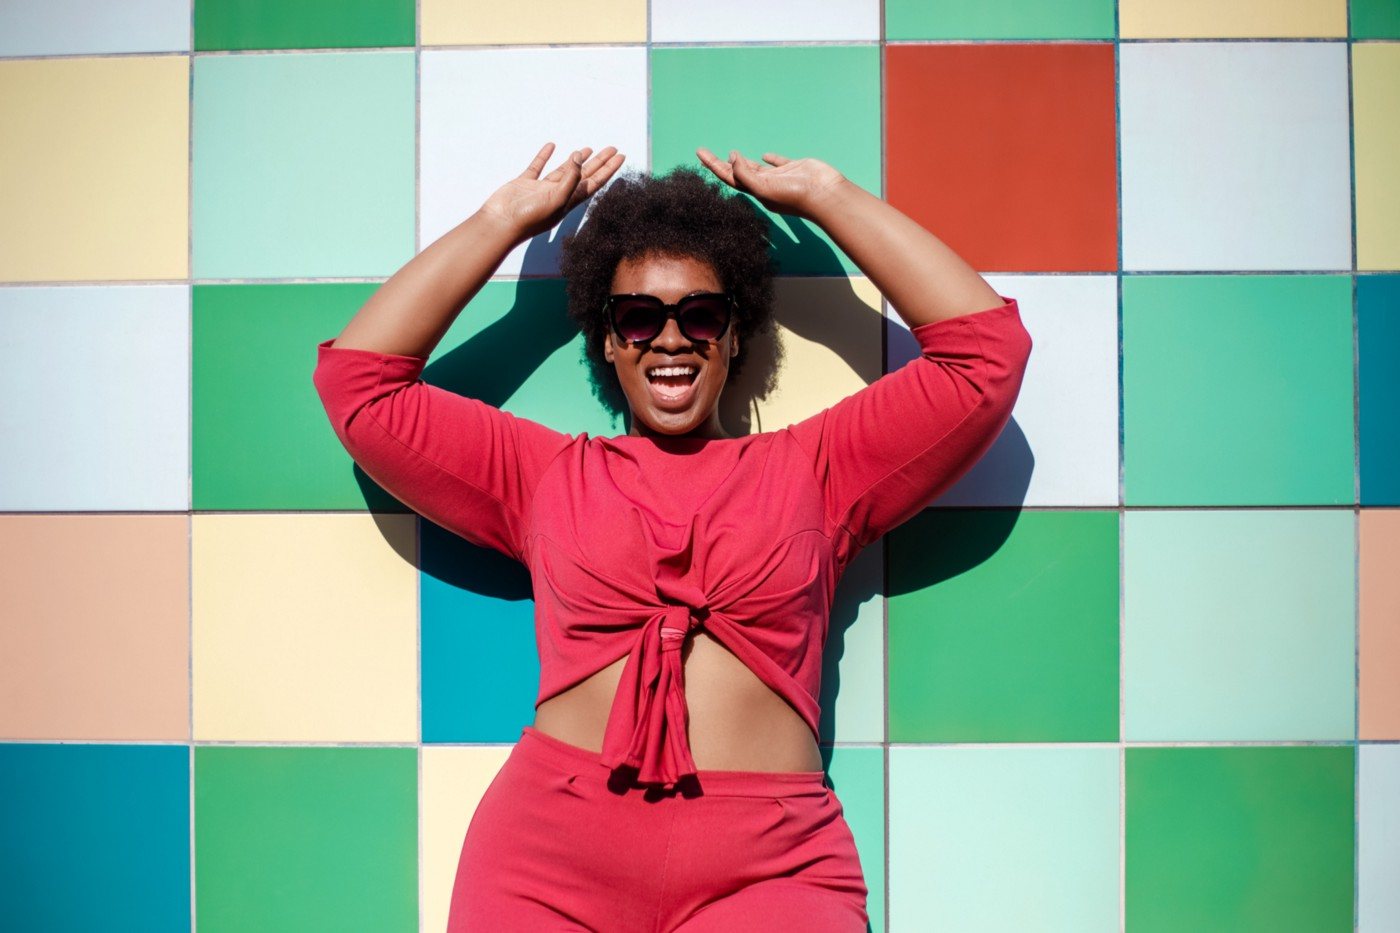 Stylish Black woman in sunglasses and red outfit posing in front of a colorful tiled wall.